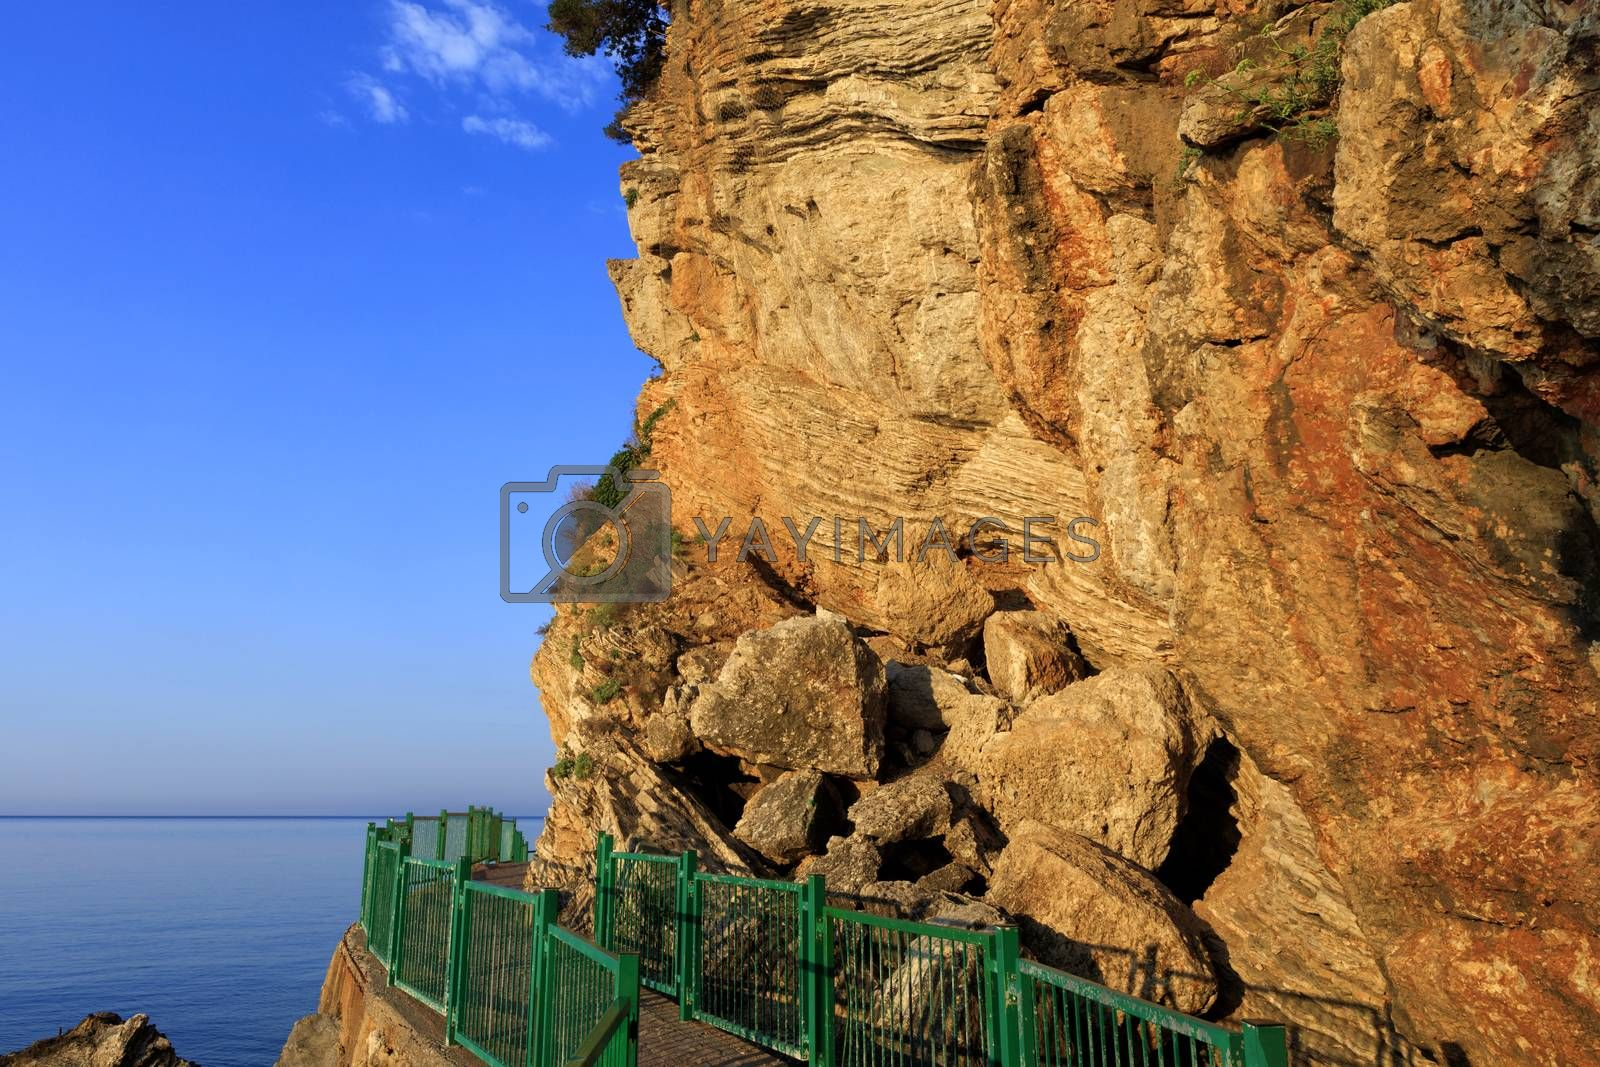 Beautiful and peaceful view of the fresh sea morning under the golden sunshine on a rocky mountain with huge stone boulders.